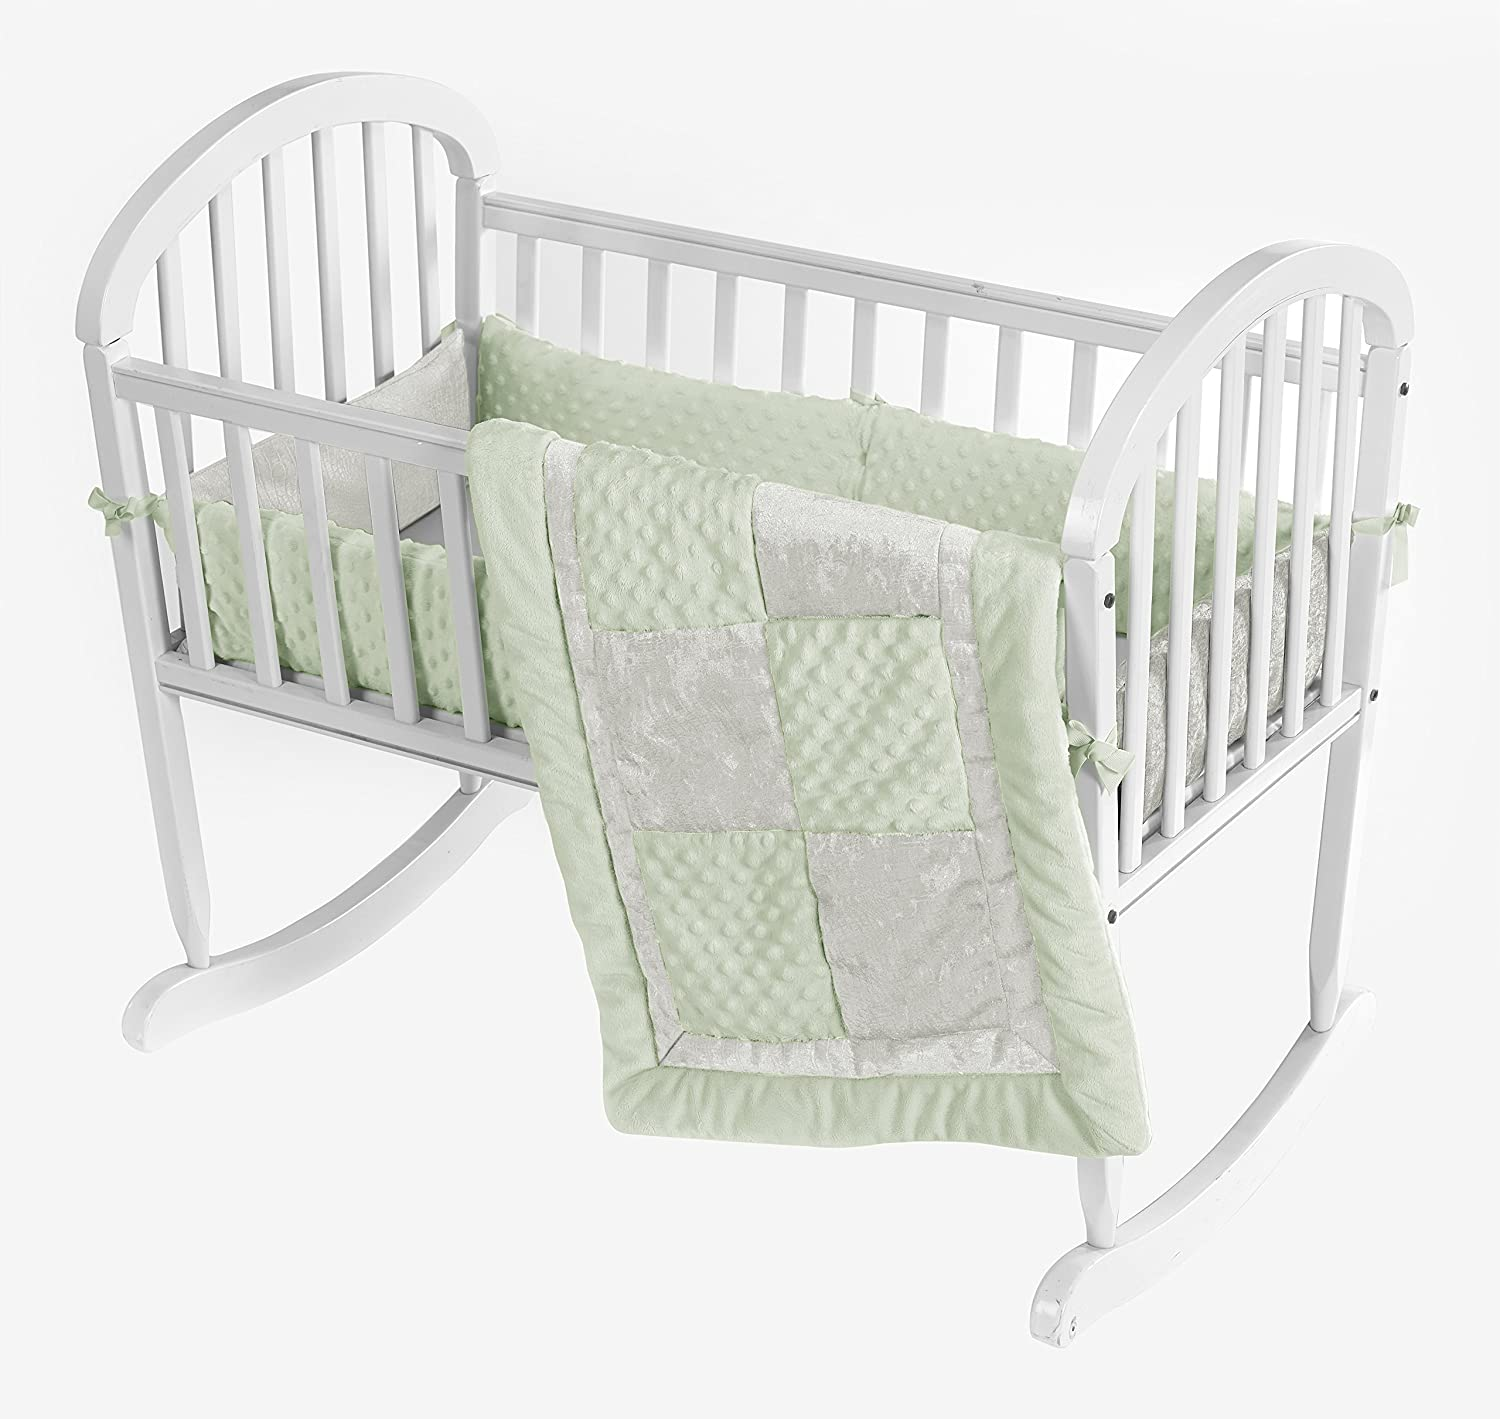 Baby Doll Bedding Croco Minky Cradle Bedding Set, Sage/Ivory by BabyDoll Bedding   B00KBGTCES